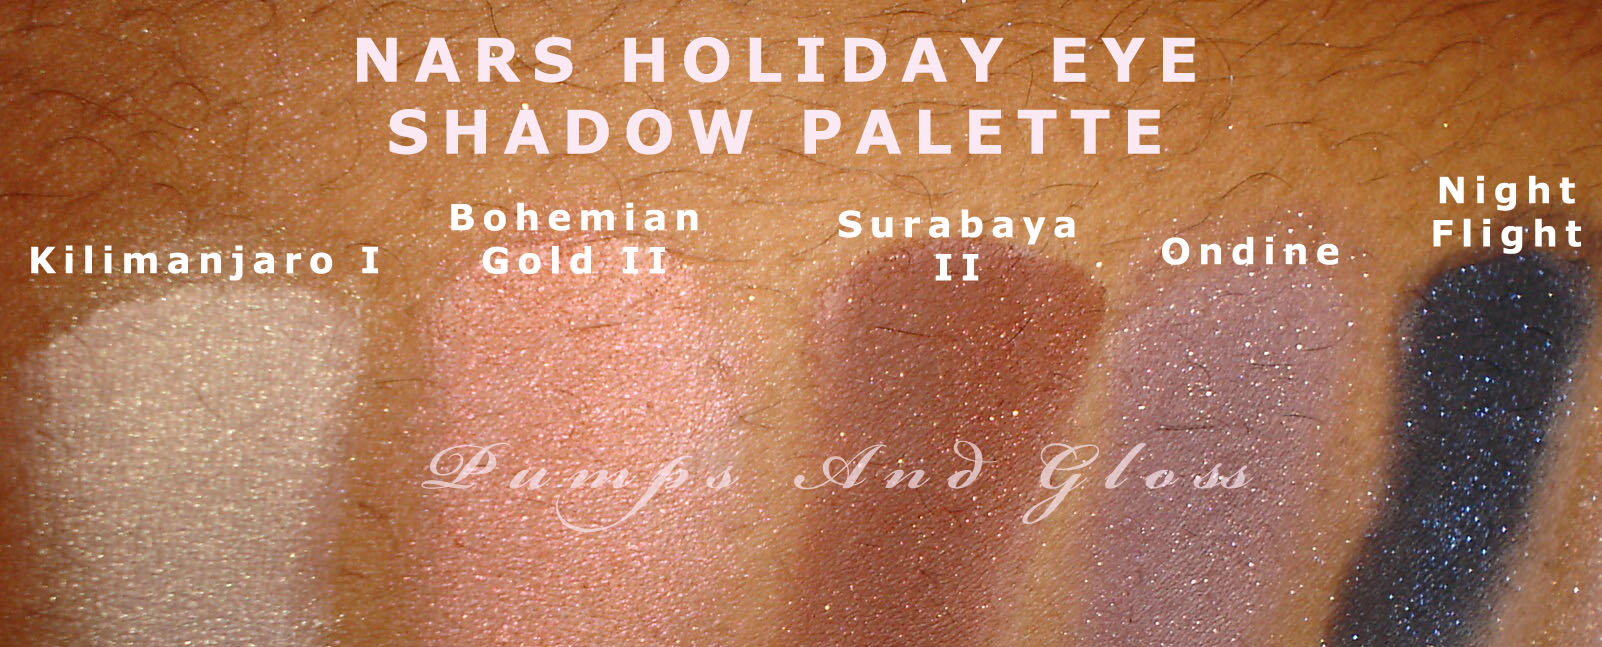 NARS Holiday Eye Shadow Palette: Kilimanjaro I, Bohemian Gold II, Surabaya II, Ondine, Night Flight (Himalayas [see swatch above])